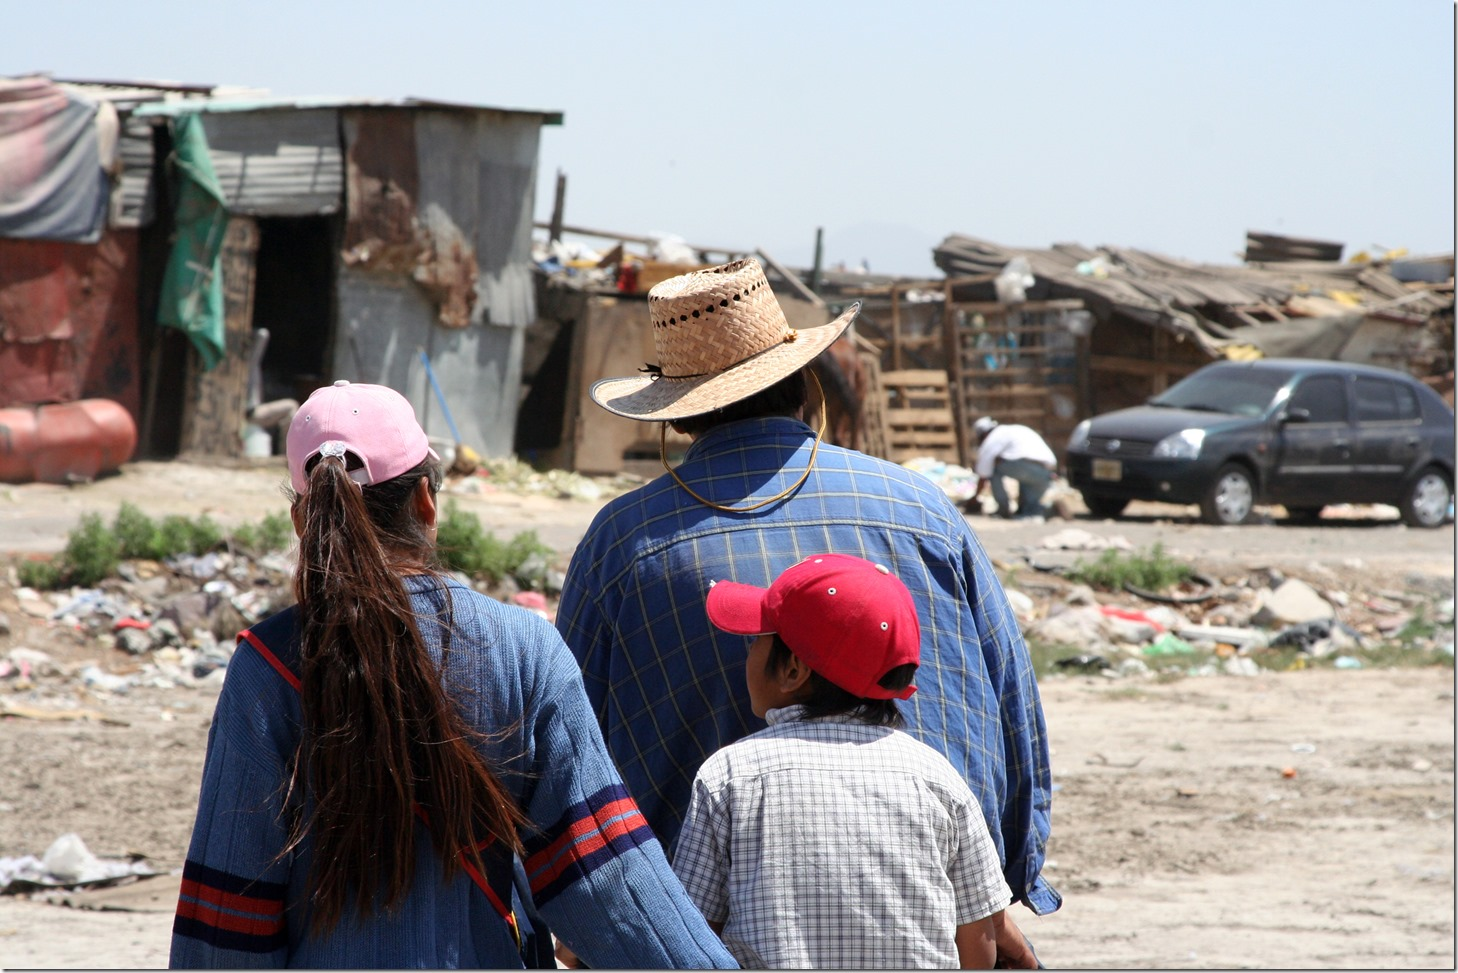 A family is walking to their home at a garbage dump.